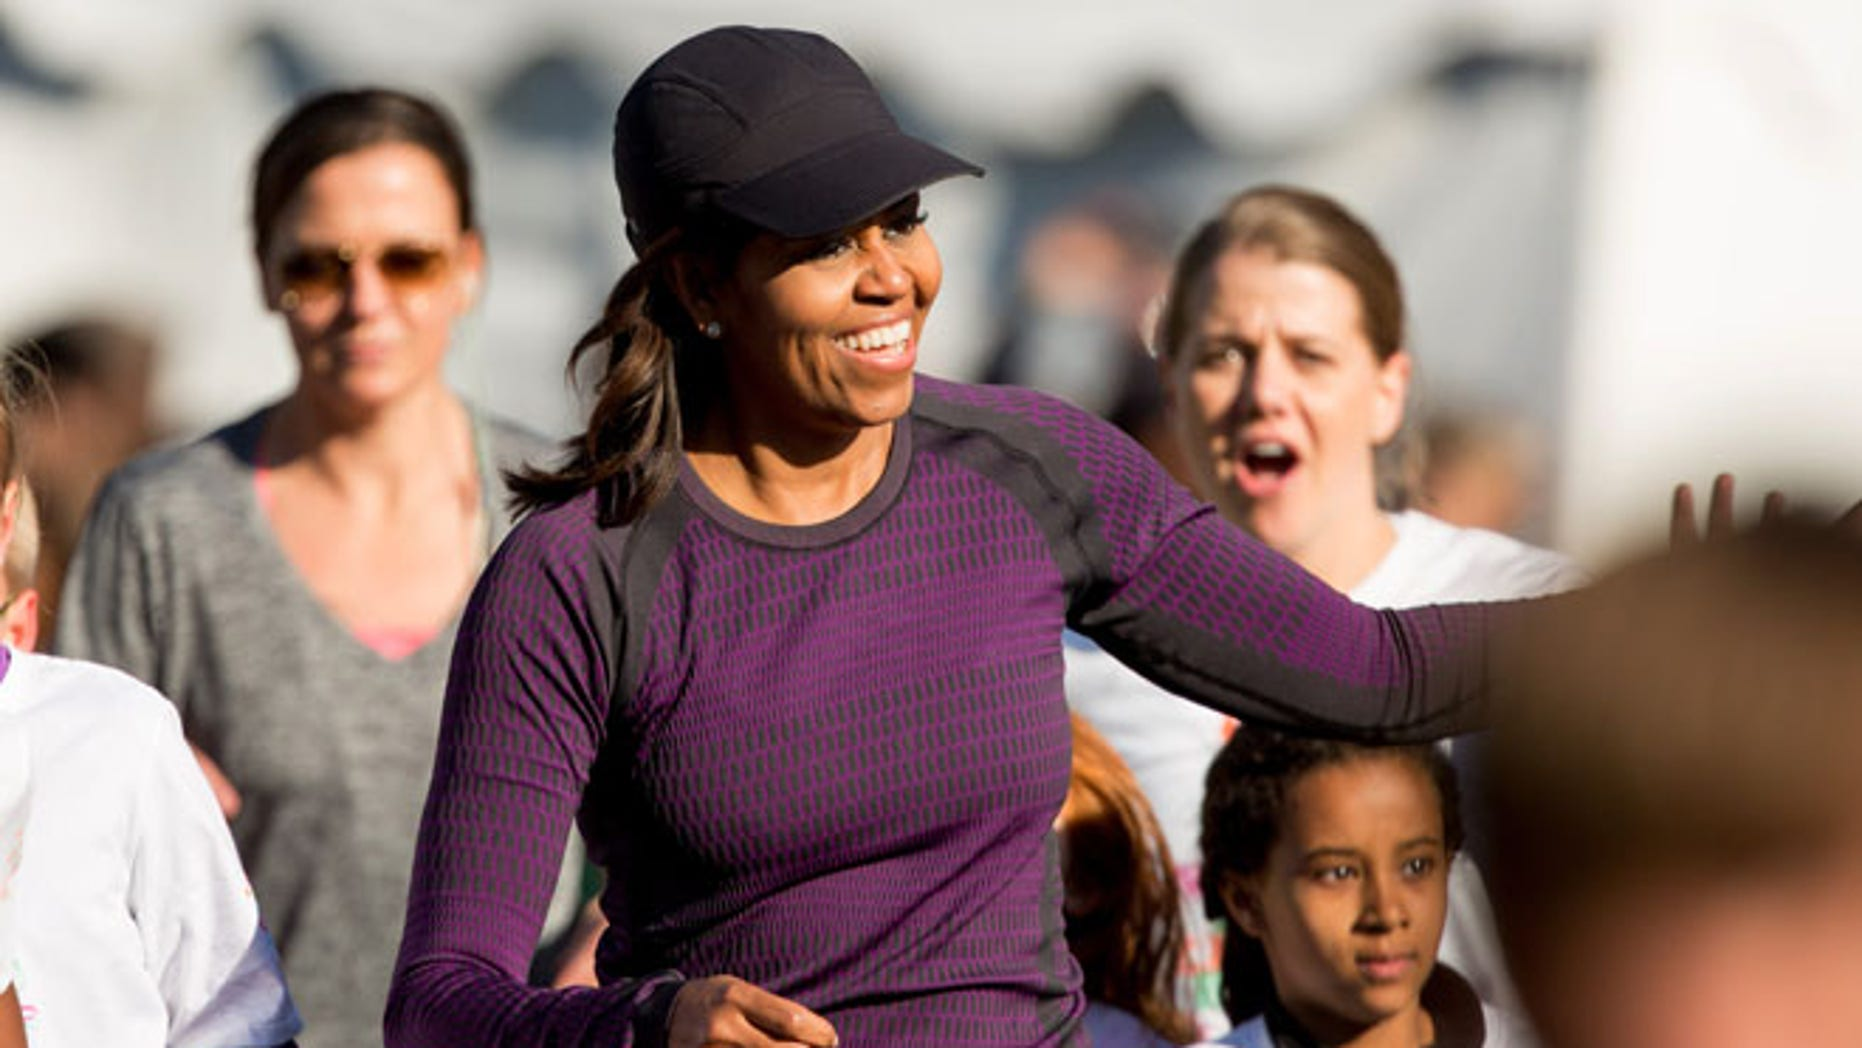 """Mar. 26, 2016: First lady Michelle Obama gets greeted from the audience as she participates in her first ever """"fun run"""" with children on the South Lawn of the the White House in Washington as part of her focus of healthy lifestyles for children."""